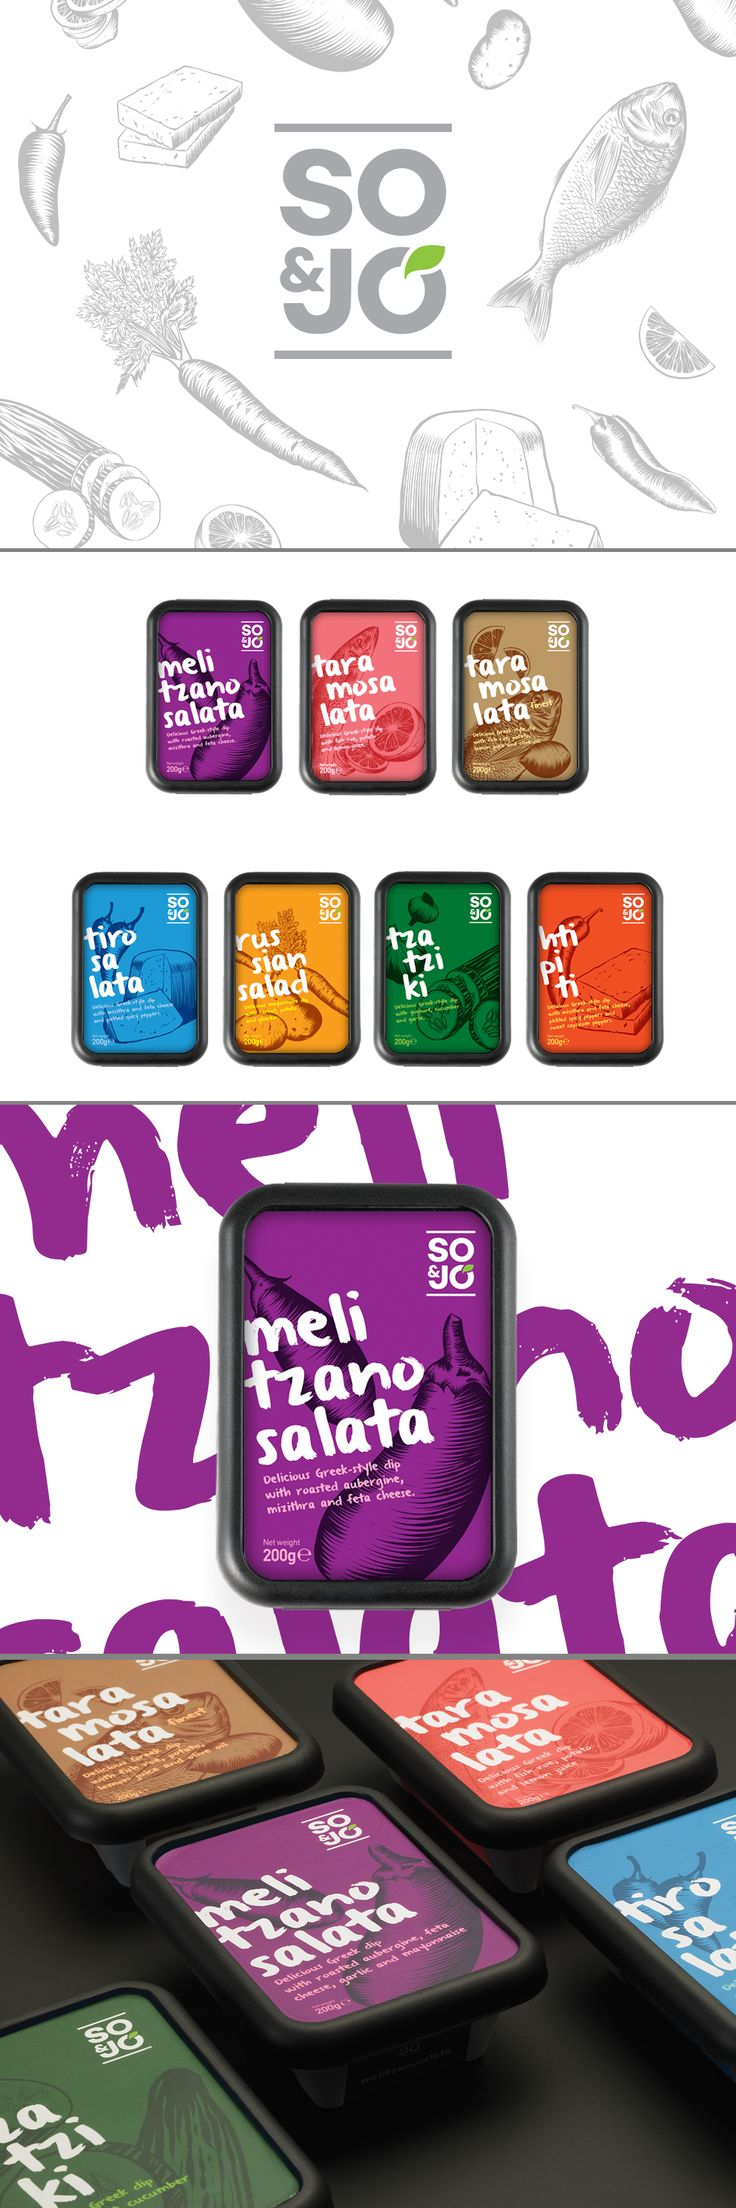 So & Jo, a new line of traditional Greek dips, designed by 2yolk